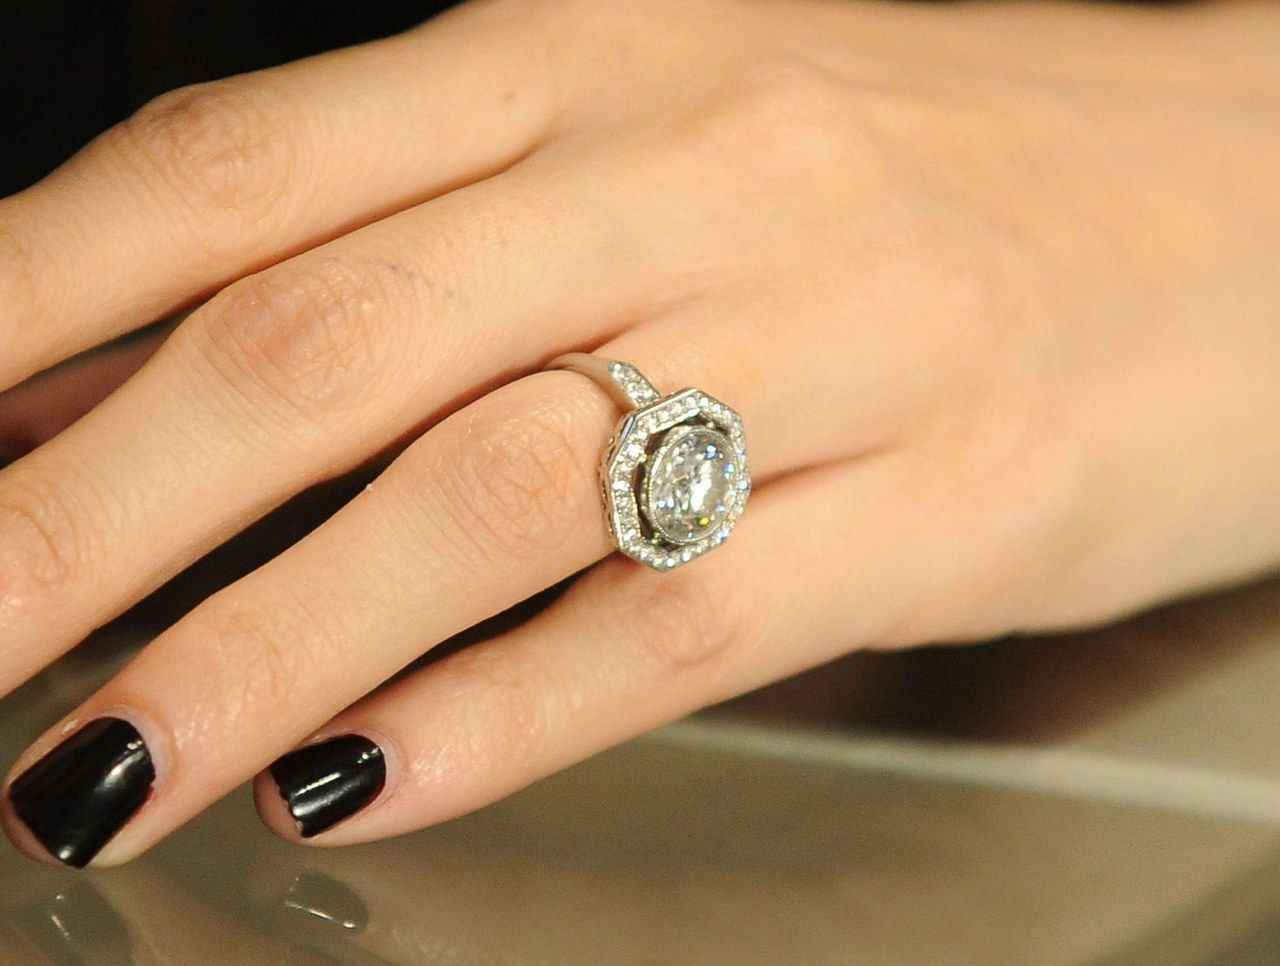 Nicole richie engagement ring celebrity engagement ring pictures 0130 getty